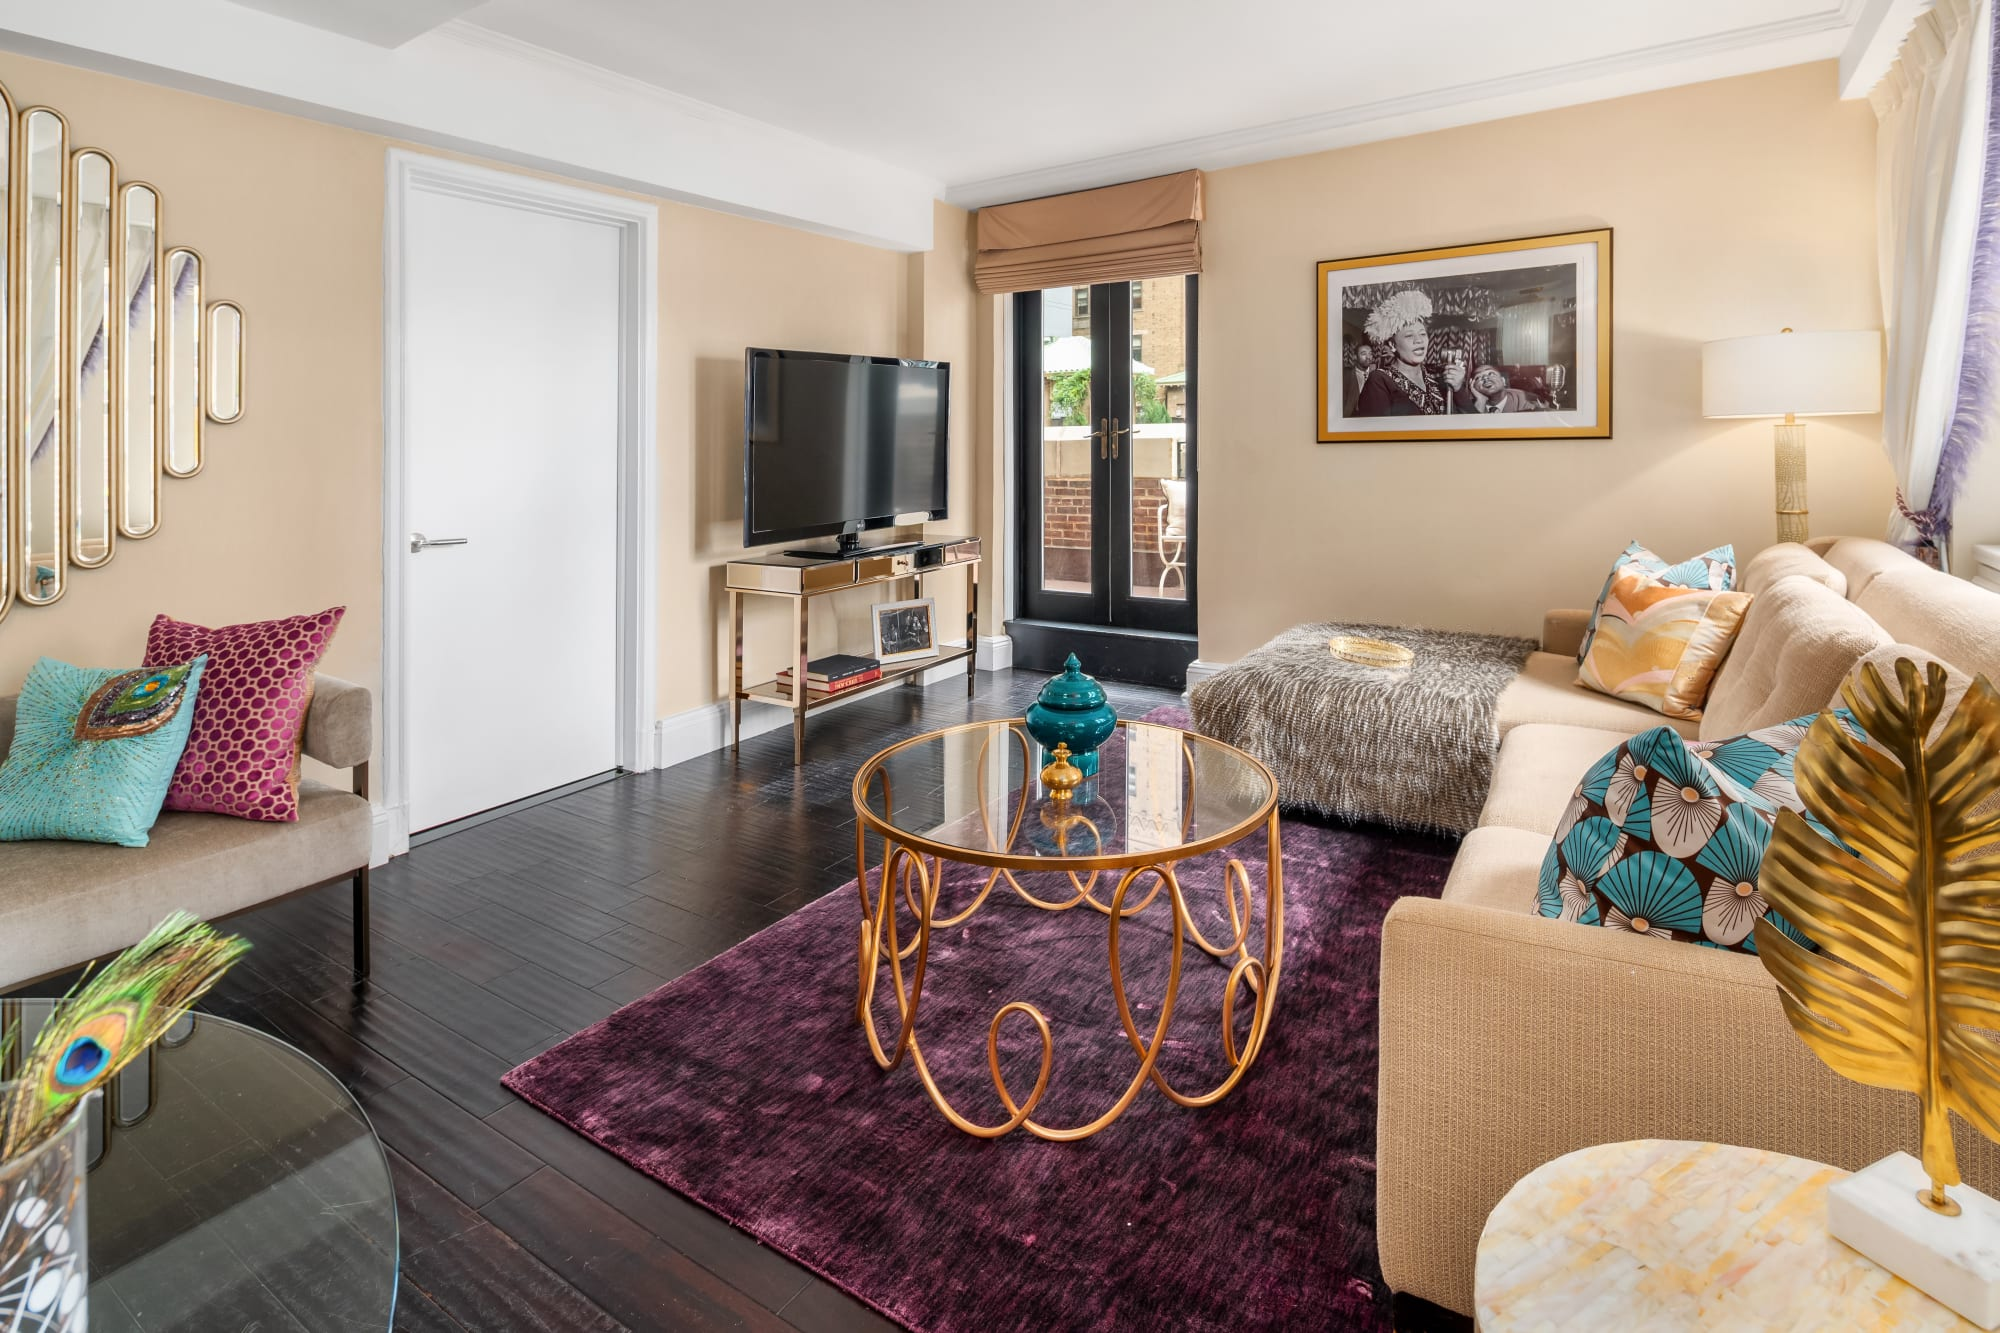 Interior Design by fringe seen at The Lexington Hotel, Autograph Collection, New York - The Lady Ella Suite